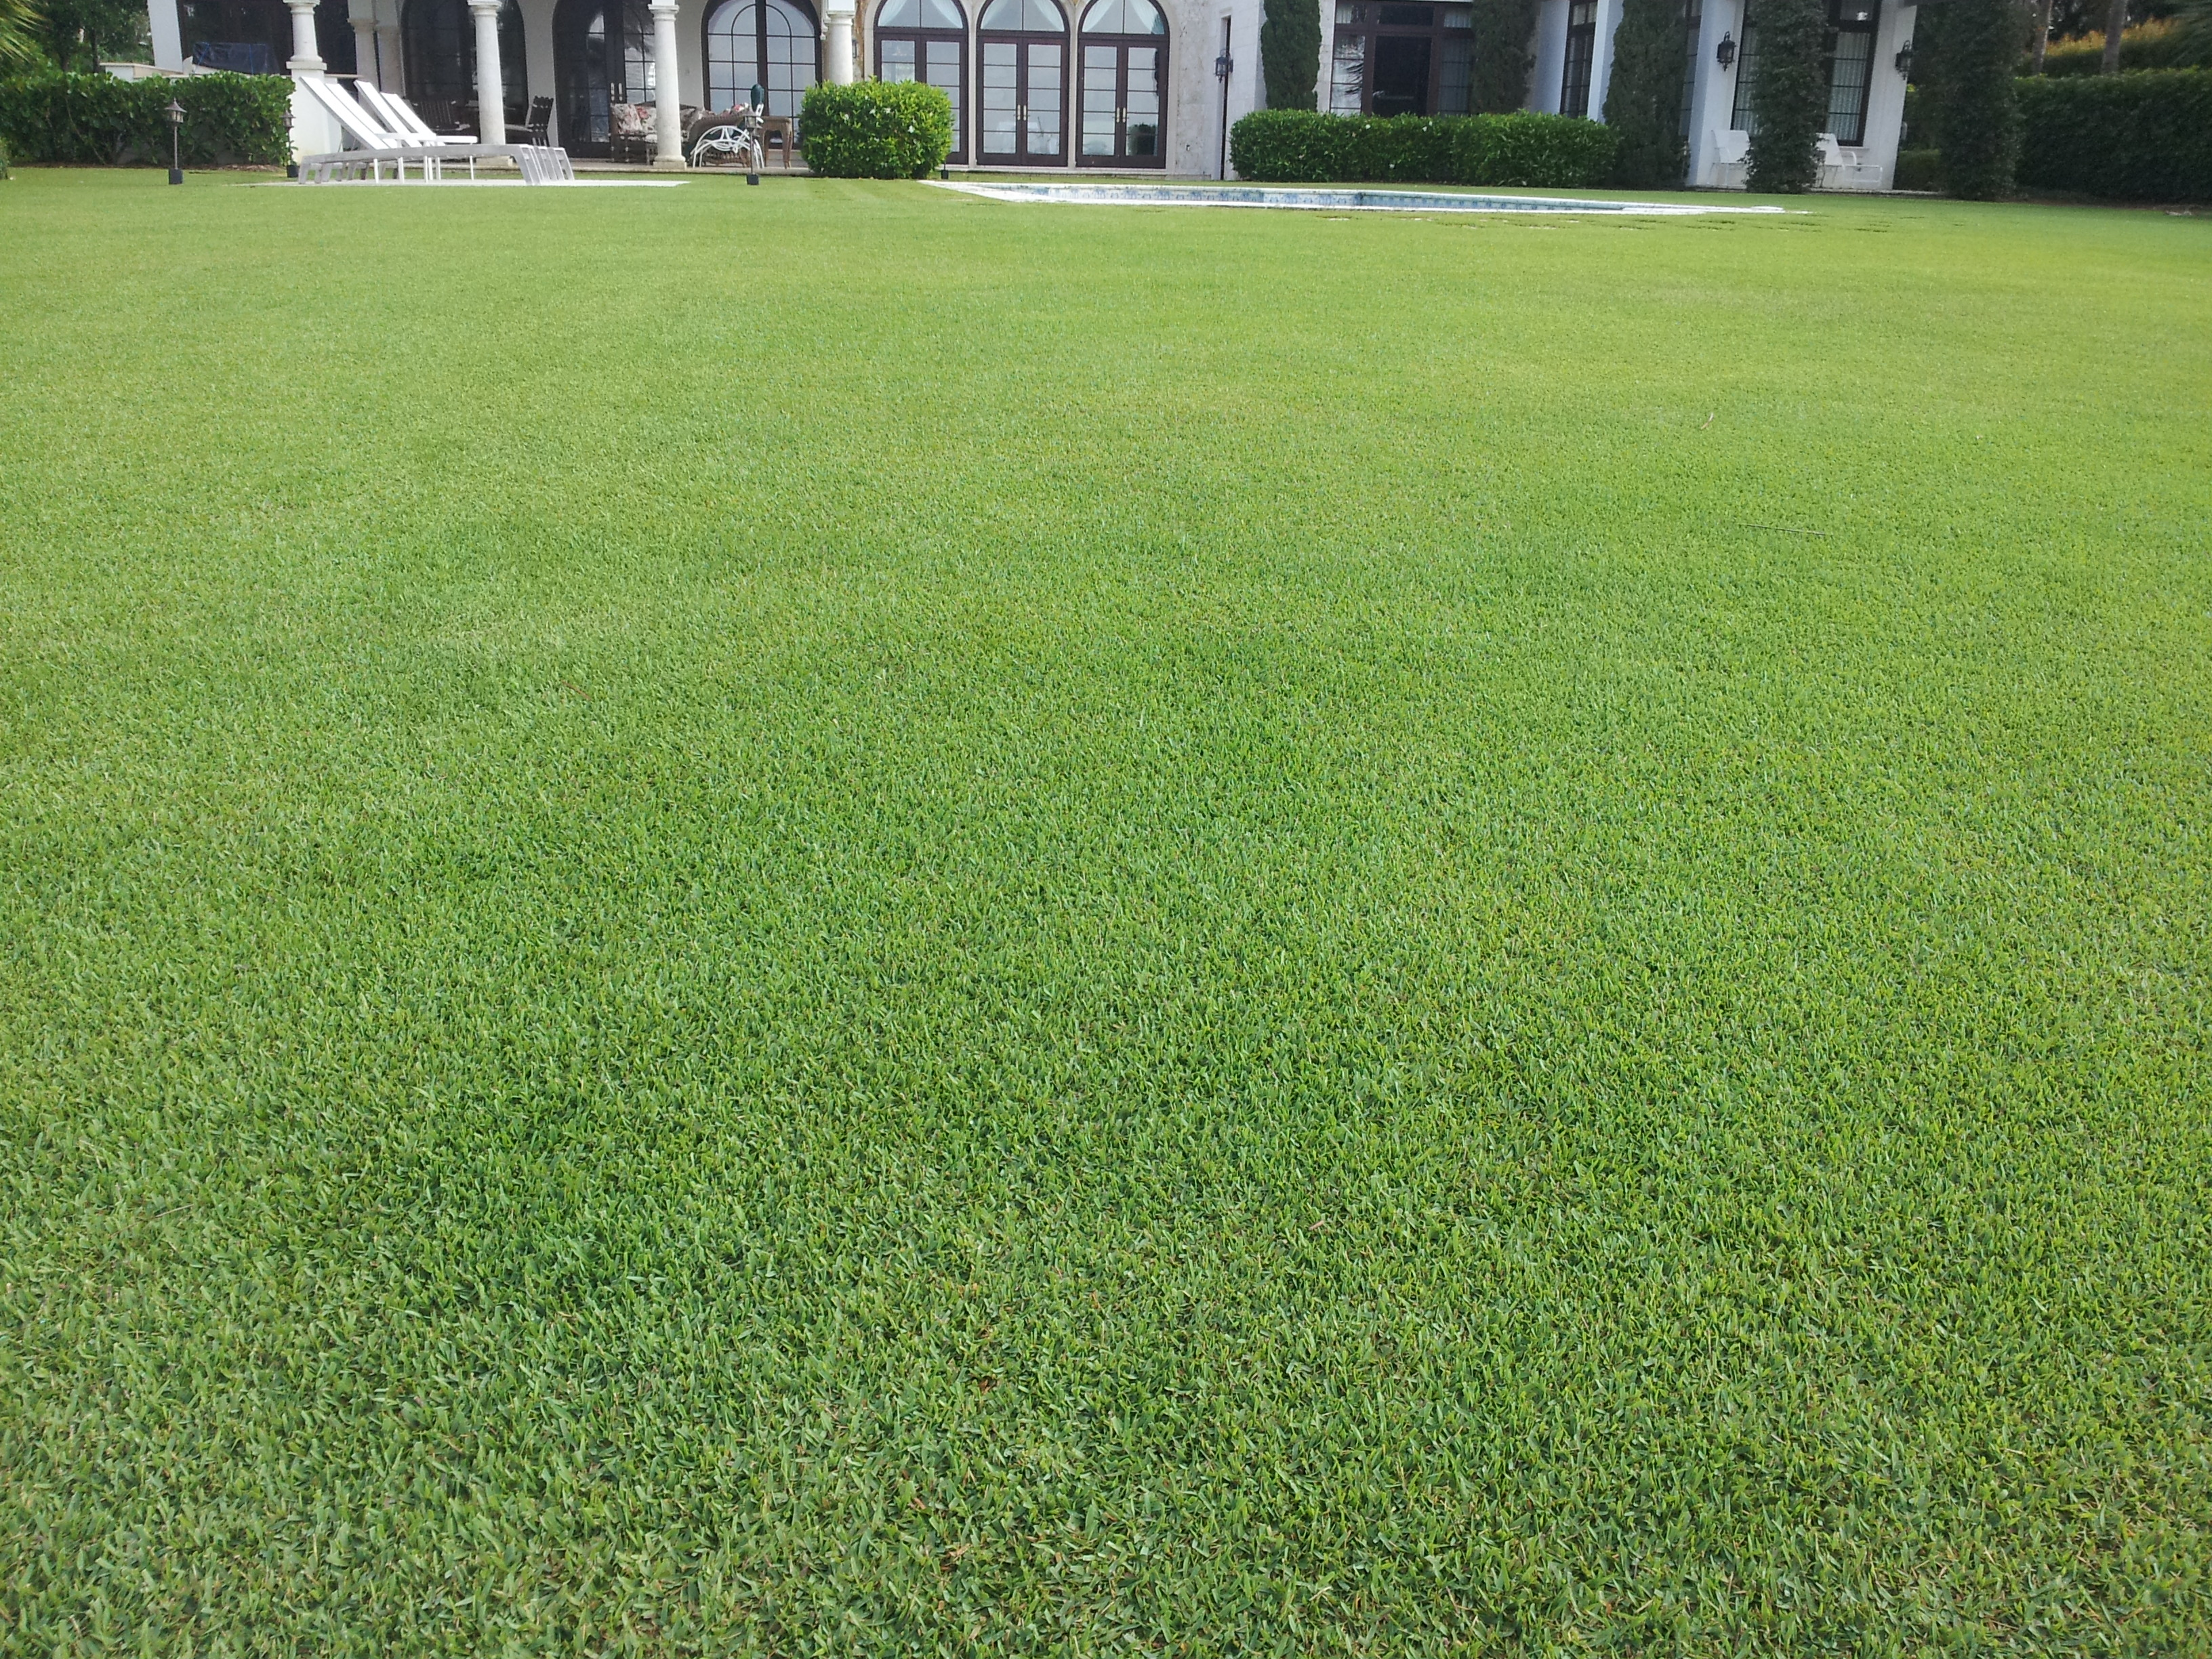 How to Make Lawn Green and Healthy